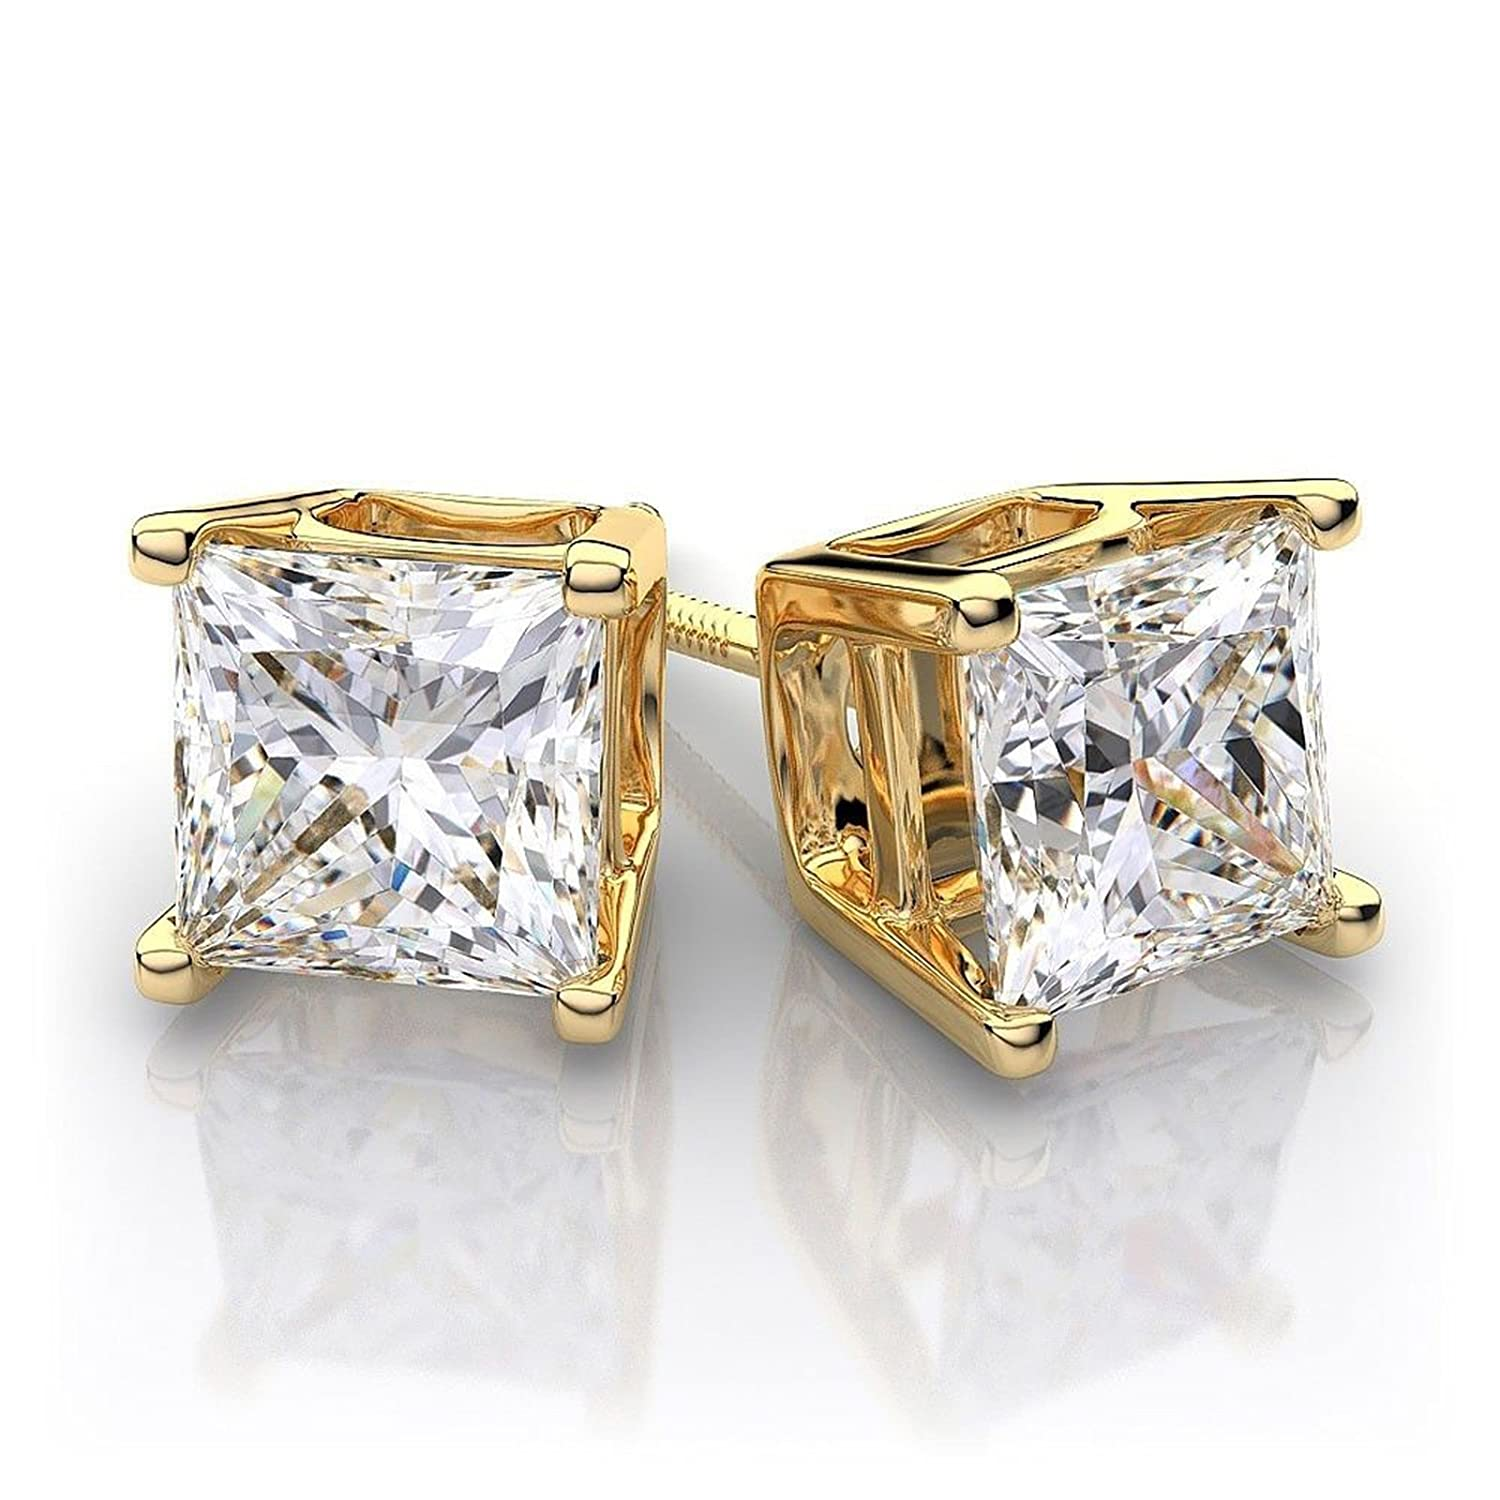 1.10 CT Princess Brilliant Cut CZ Solitaire Stud Earrings in 14k Yellow Gold Screw Back